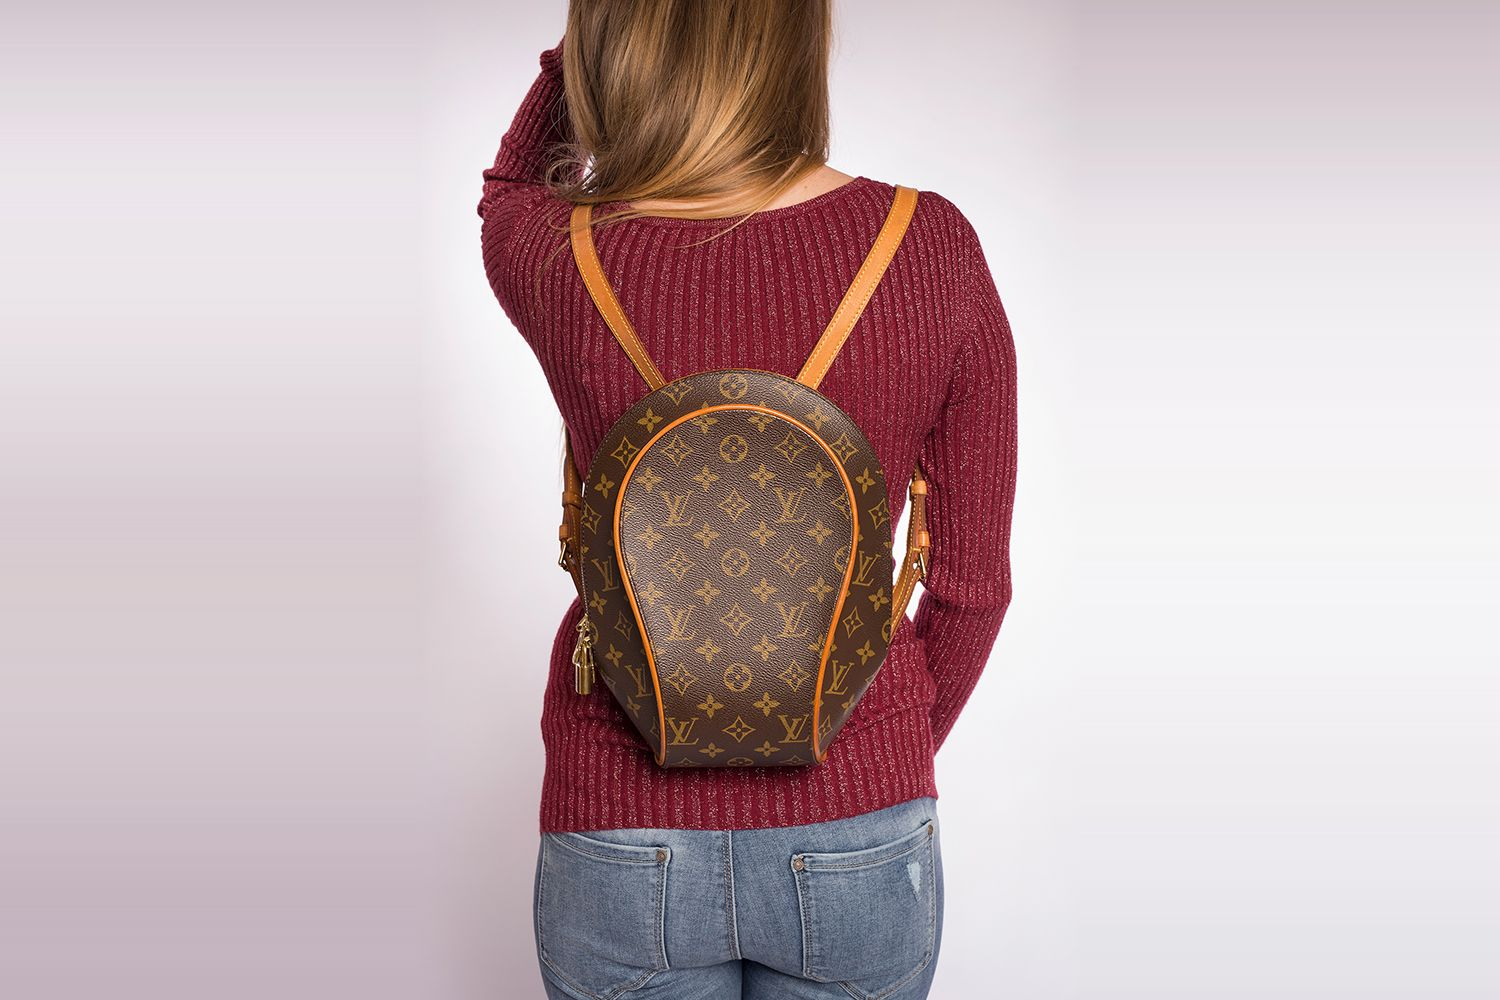 Superbe Sac à dos Louis Vuitton Ellipse Authentique d occasion en toile  Monogram brun A 9db8fa244c8